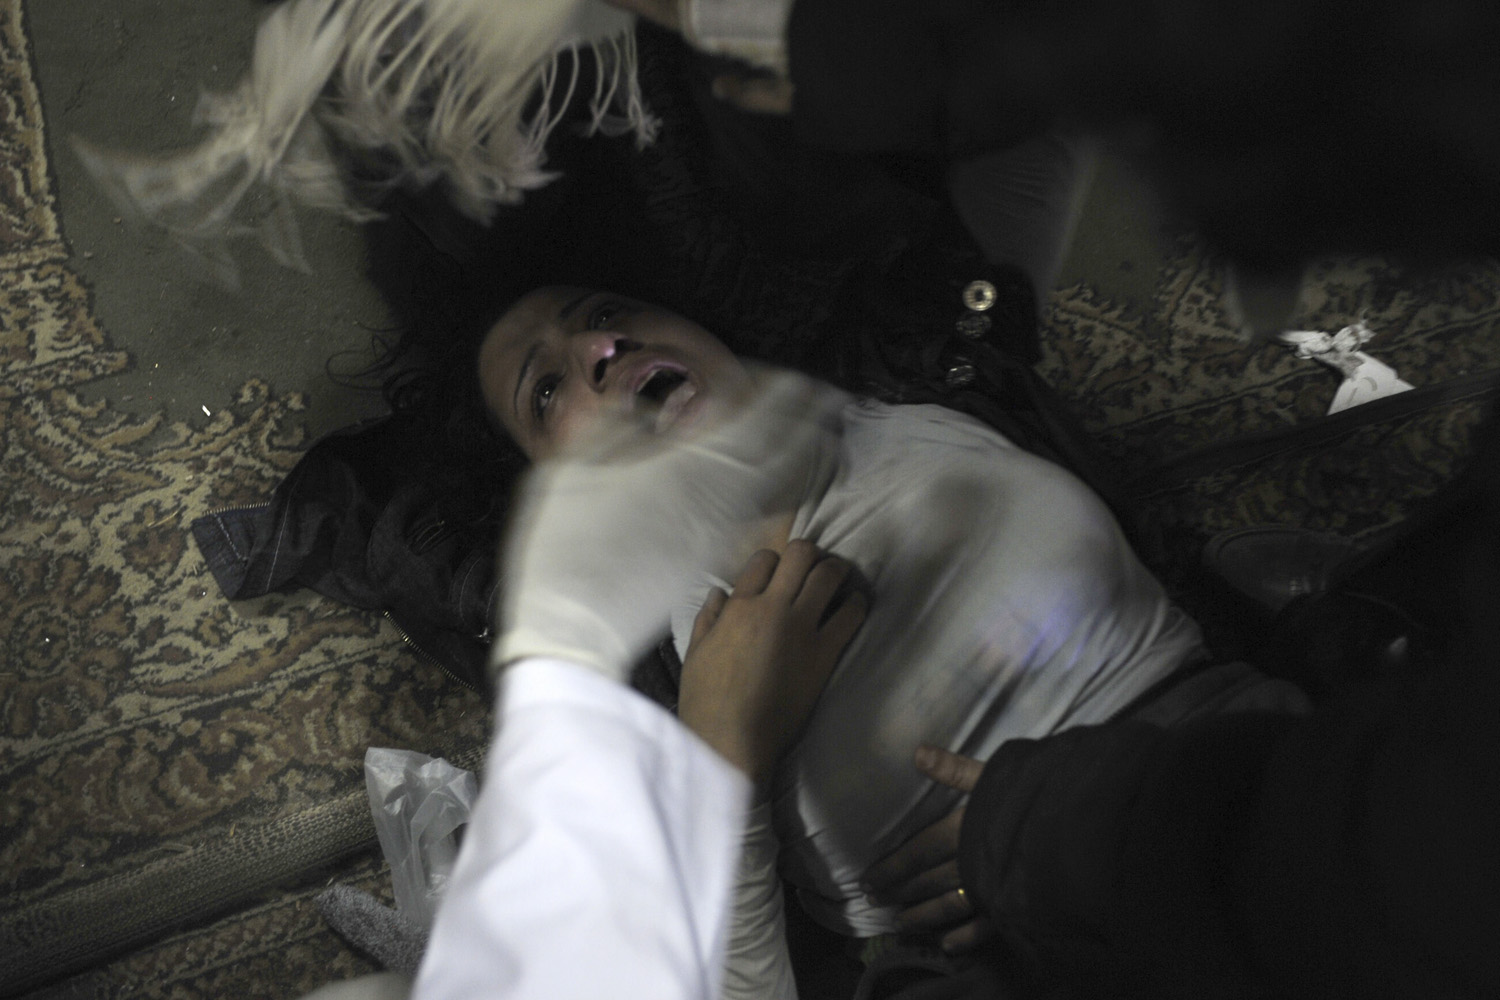 February 2, 2011. An injured Egyptian woman receives treatment at  an unidentified makeshift emergency treatment location as pro-Mubarak and anti-Mubarak protesters clash in Tahrir square, in Cairo, Egypt.